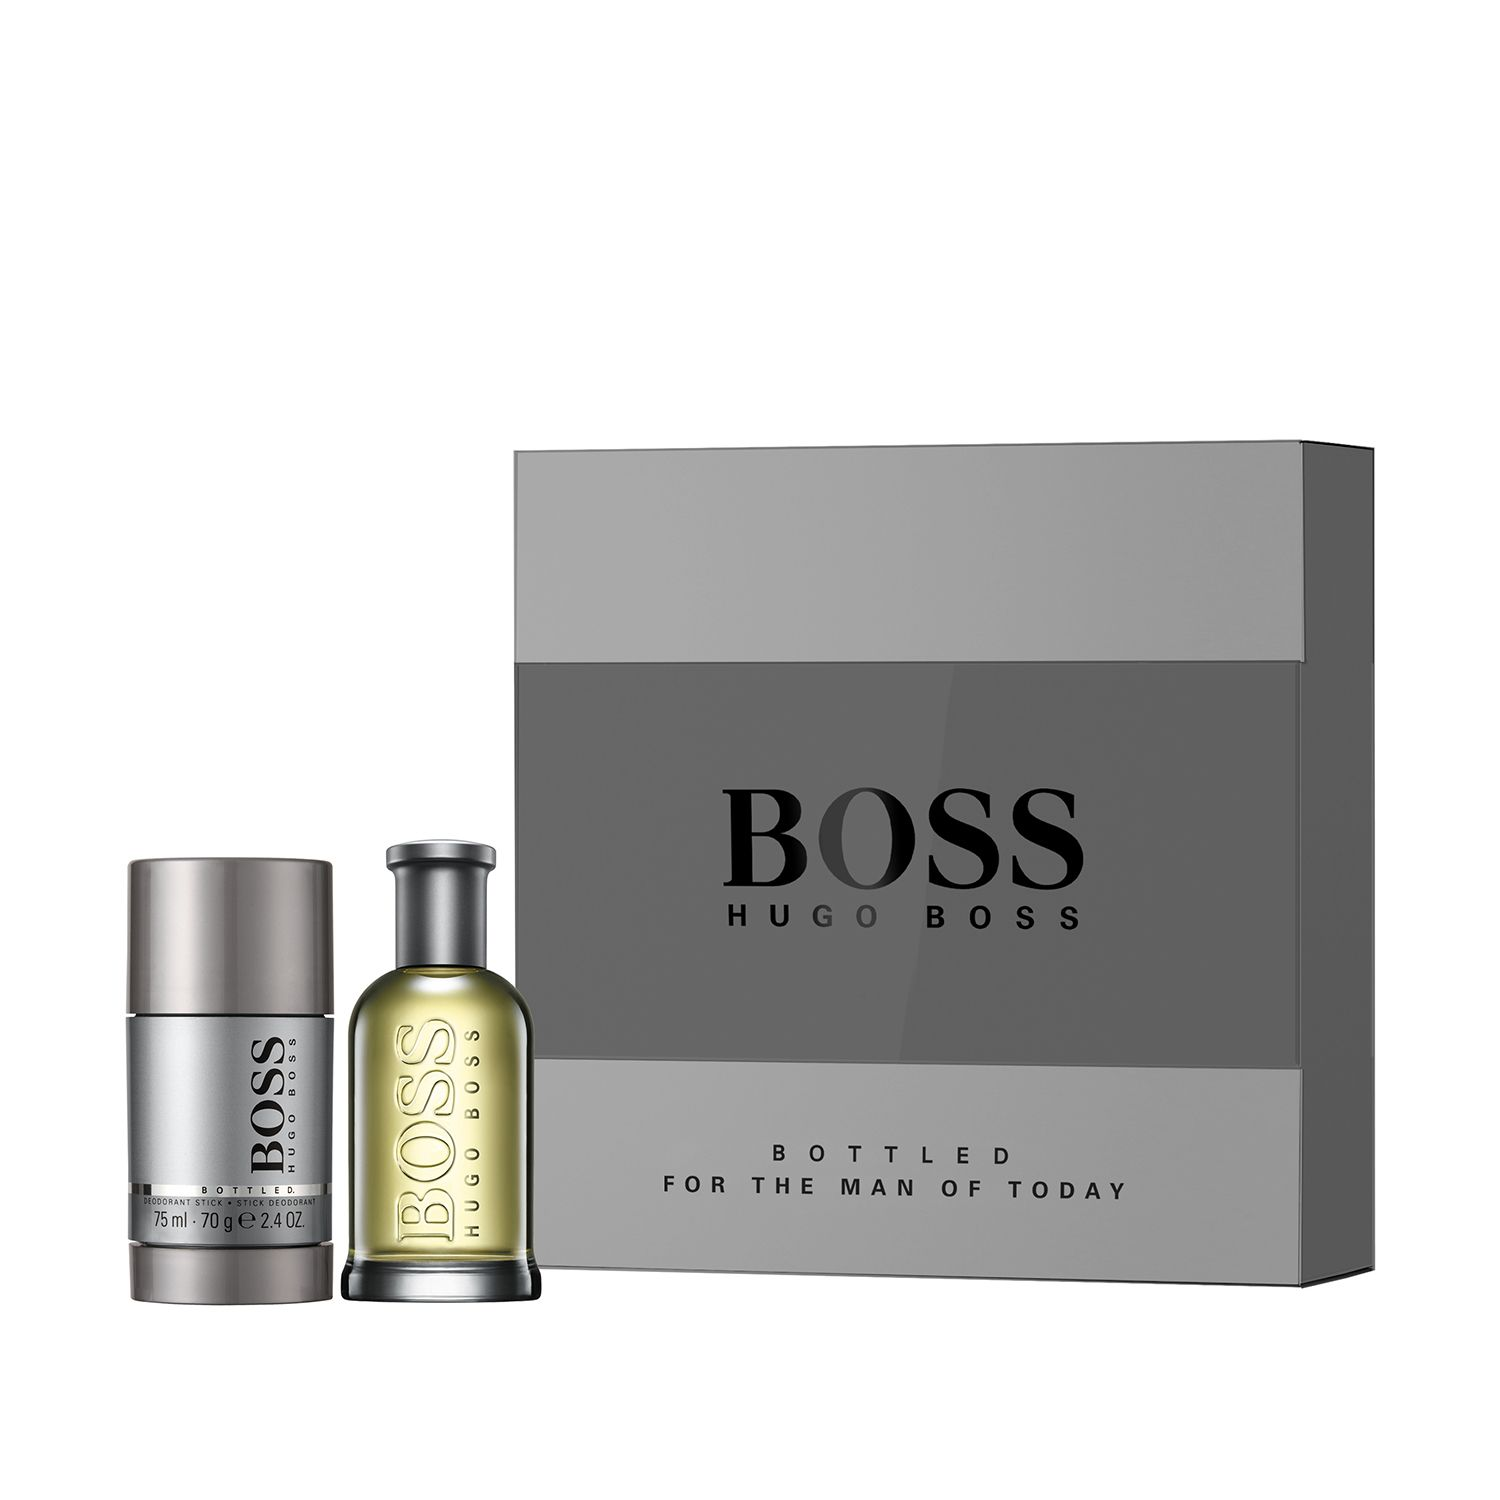 hugo boss gift set for him